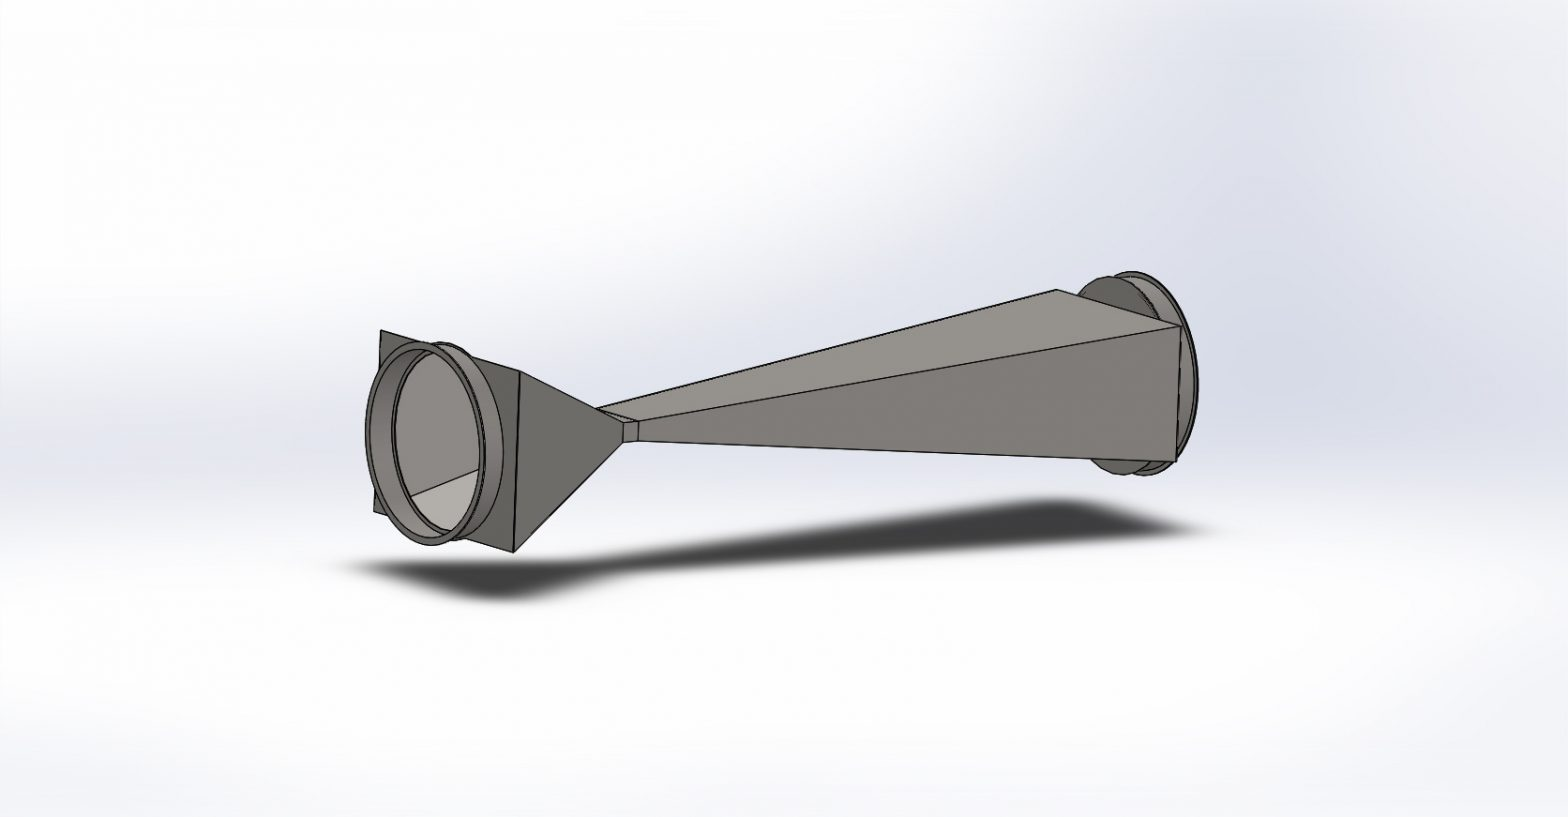 Beer cavitation reactor